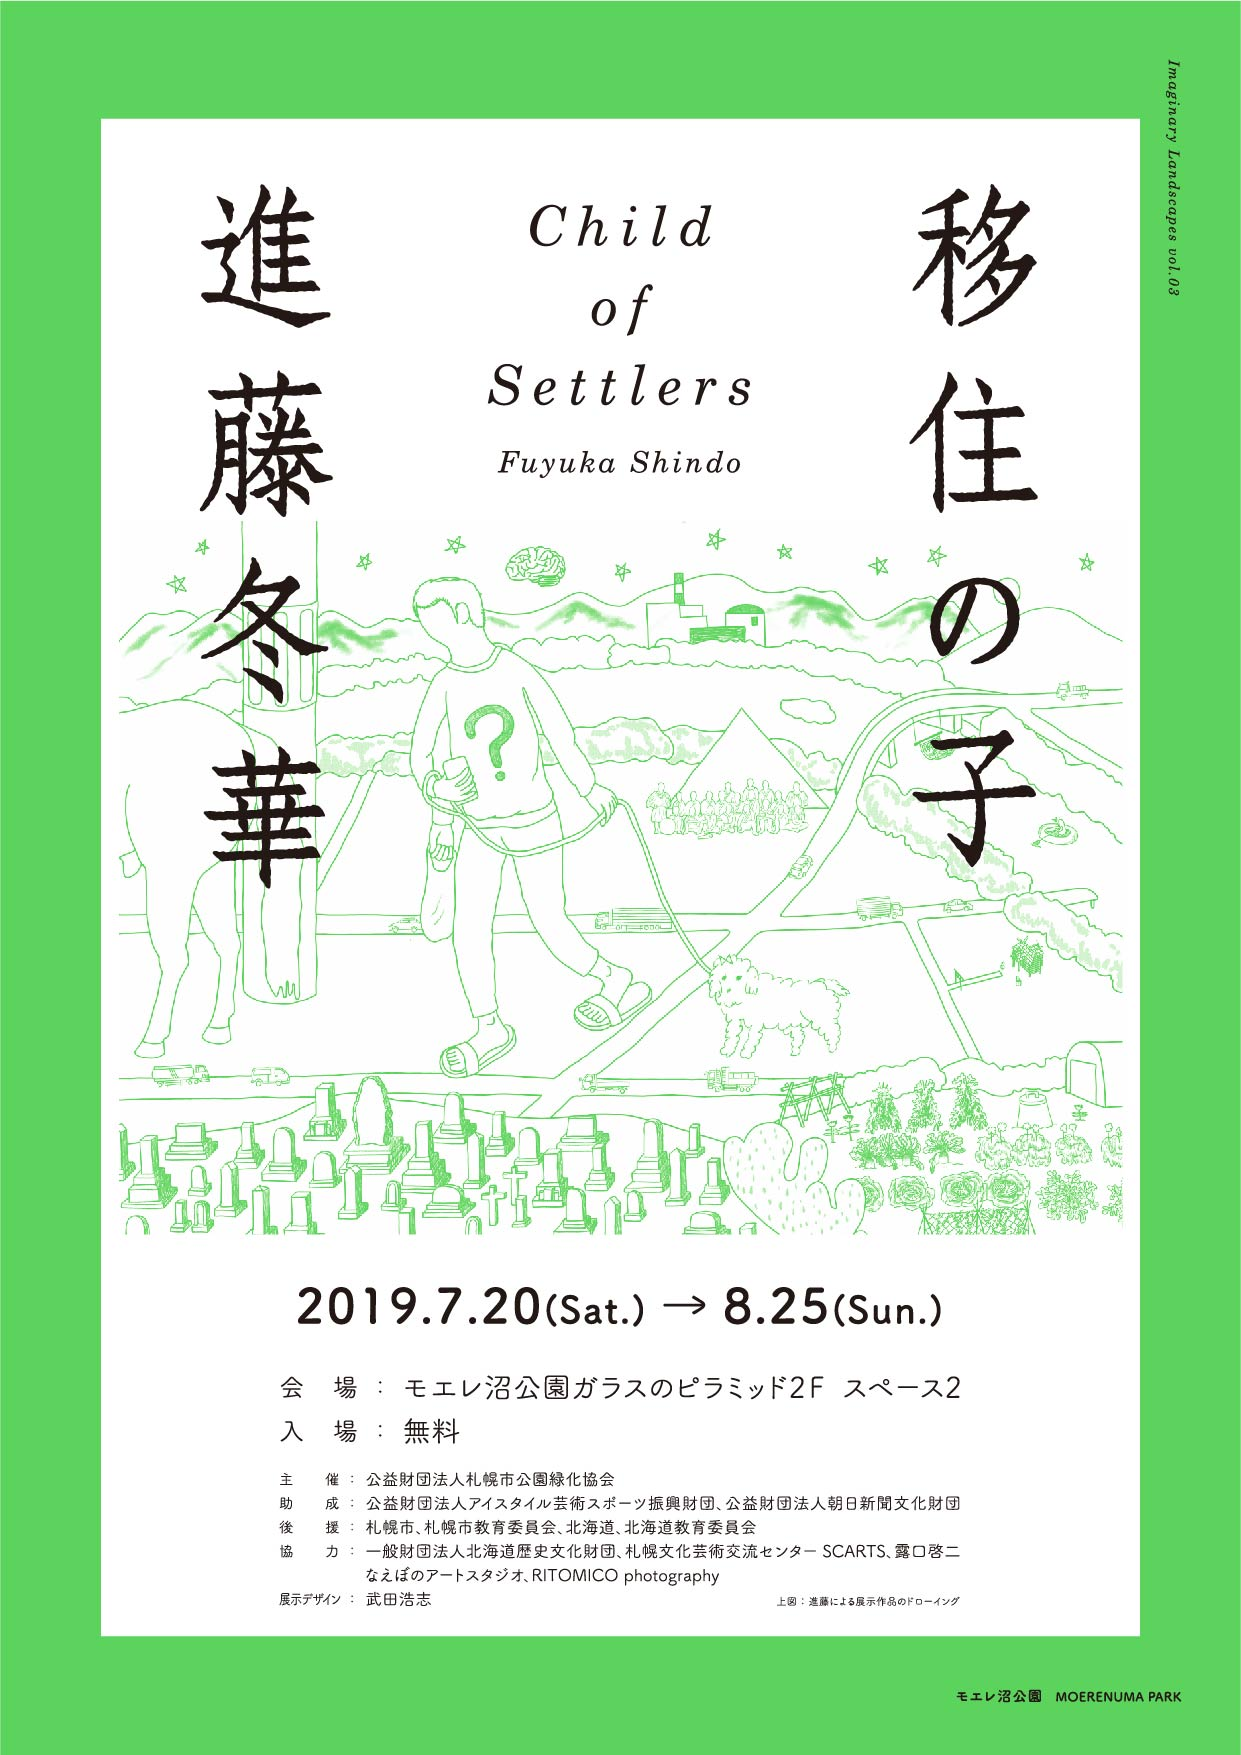 child_of_settlers-チラシ表面